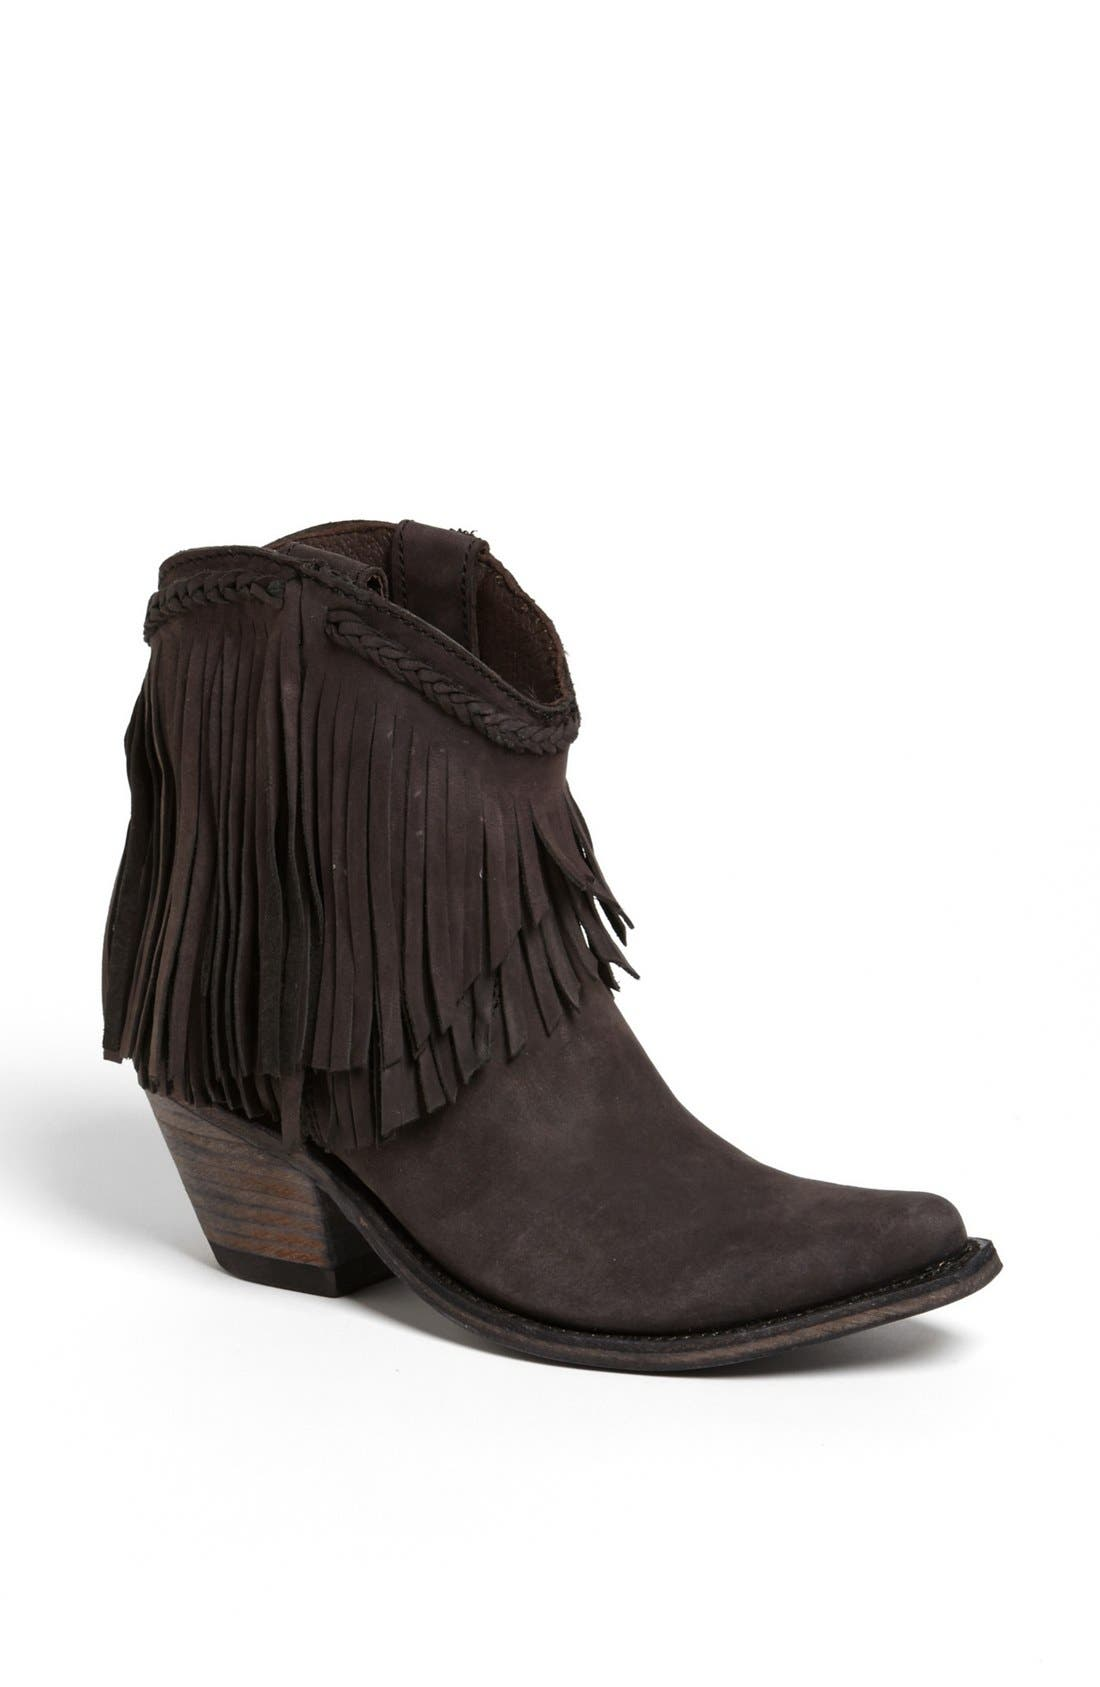 Alternate Image 1 Selected - Liberty Black Fringed Short Boot